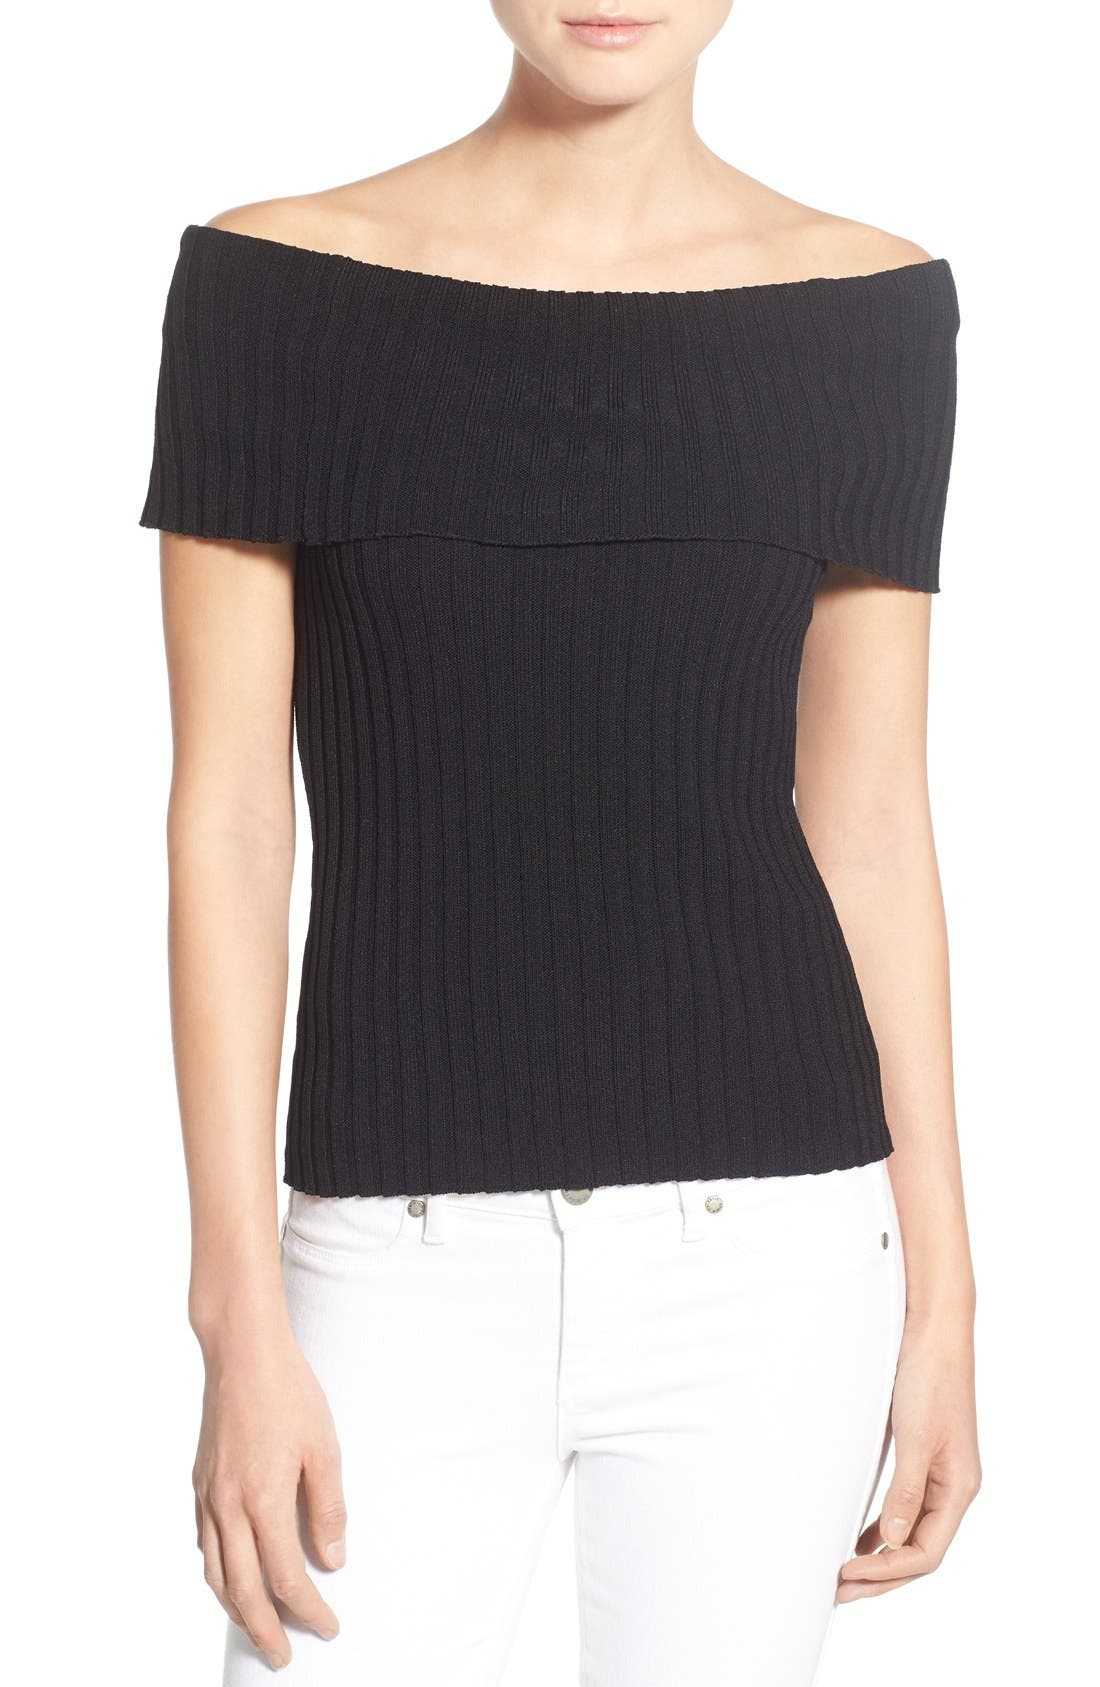 Alternate Image 1 Selected - Olivia Palermo + Chelsea28 Rib Knit Off the Shoulder Sweater